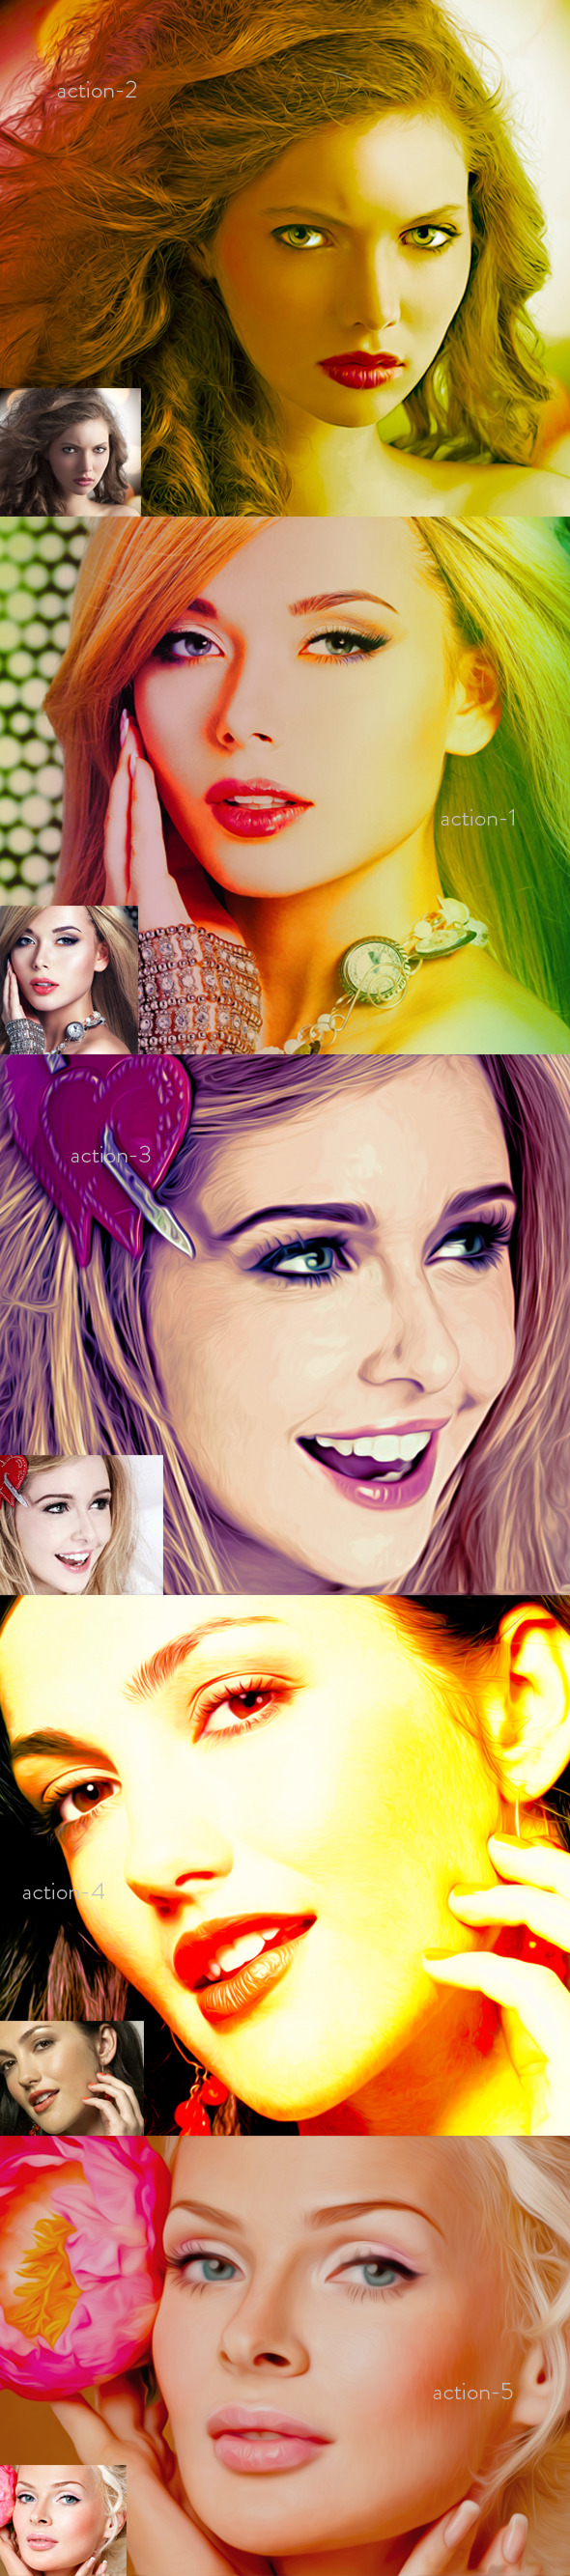 GraphicRiver Creative Art Action 9597940